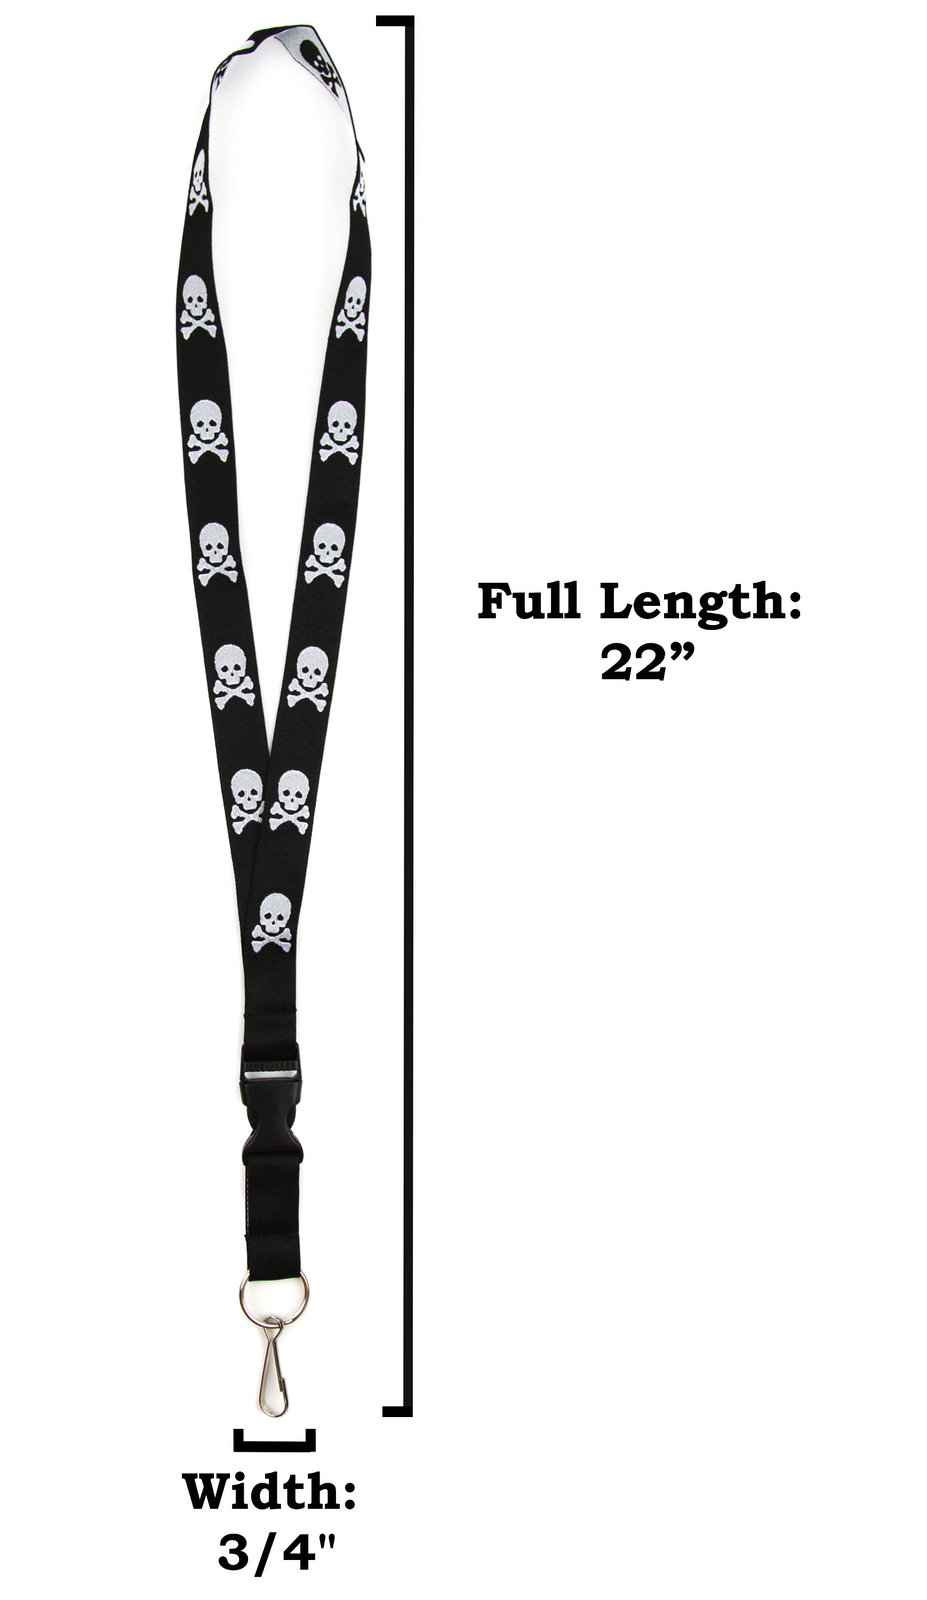 Skull and Crossbones Lanyard Keychain ID Holder with Detachable, Breakaway Buckl